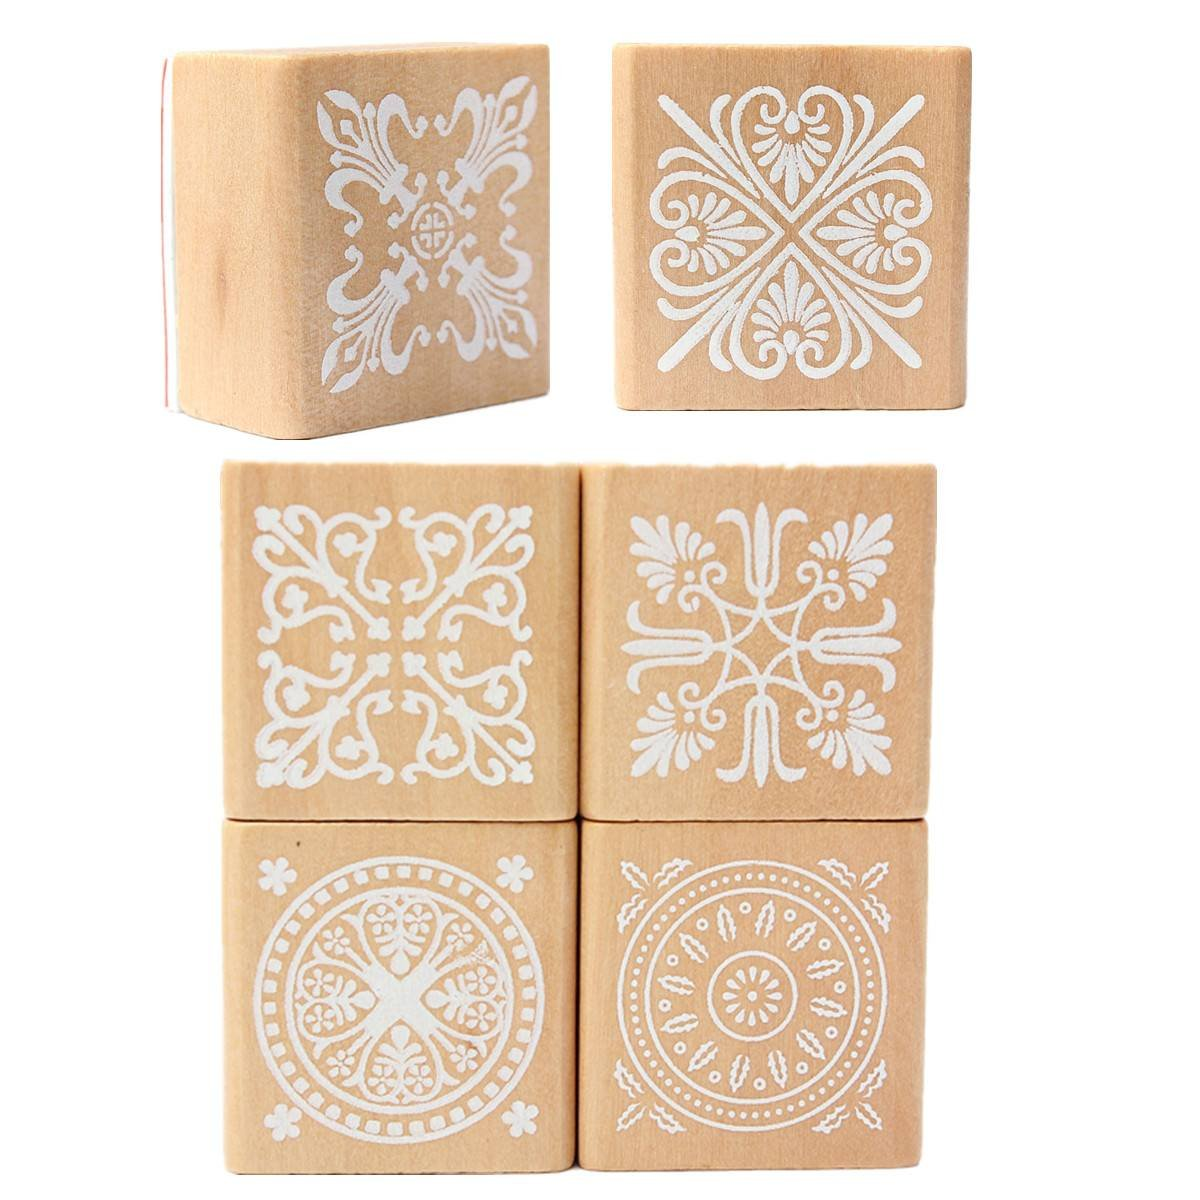 Wholesale 5* 6 Assorted Wooden Stamp Rubber Seal Square Handwriting DIY Craft Flower Lace